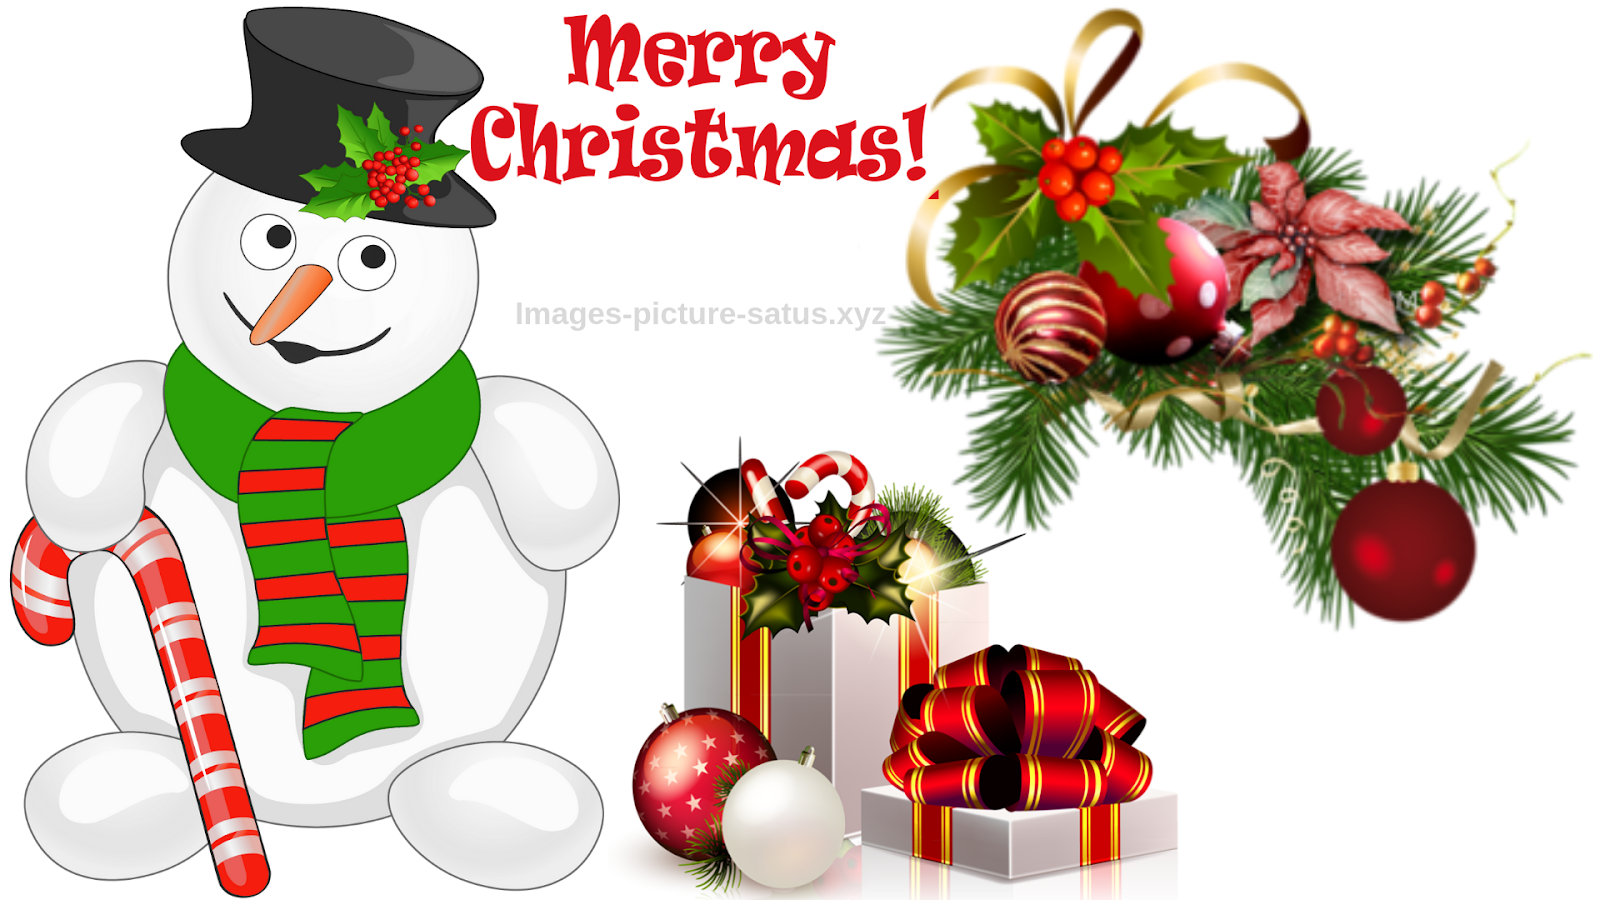 Happy Christmas Images Picture Quotes Greeting Massages Sms